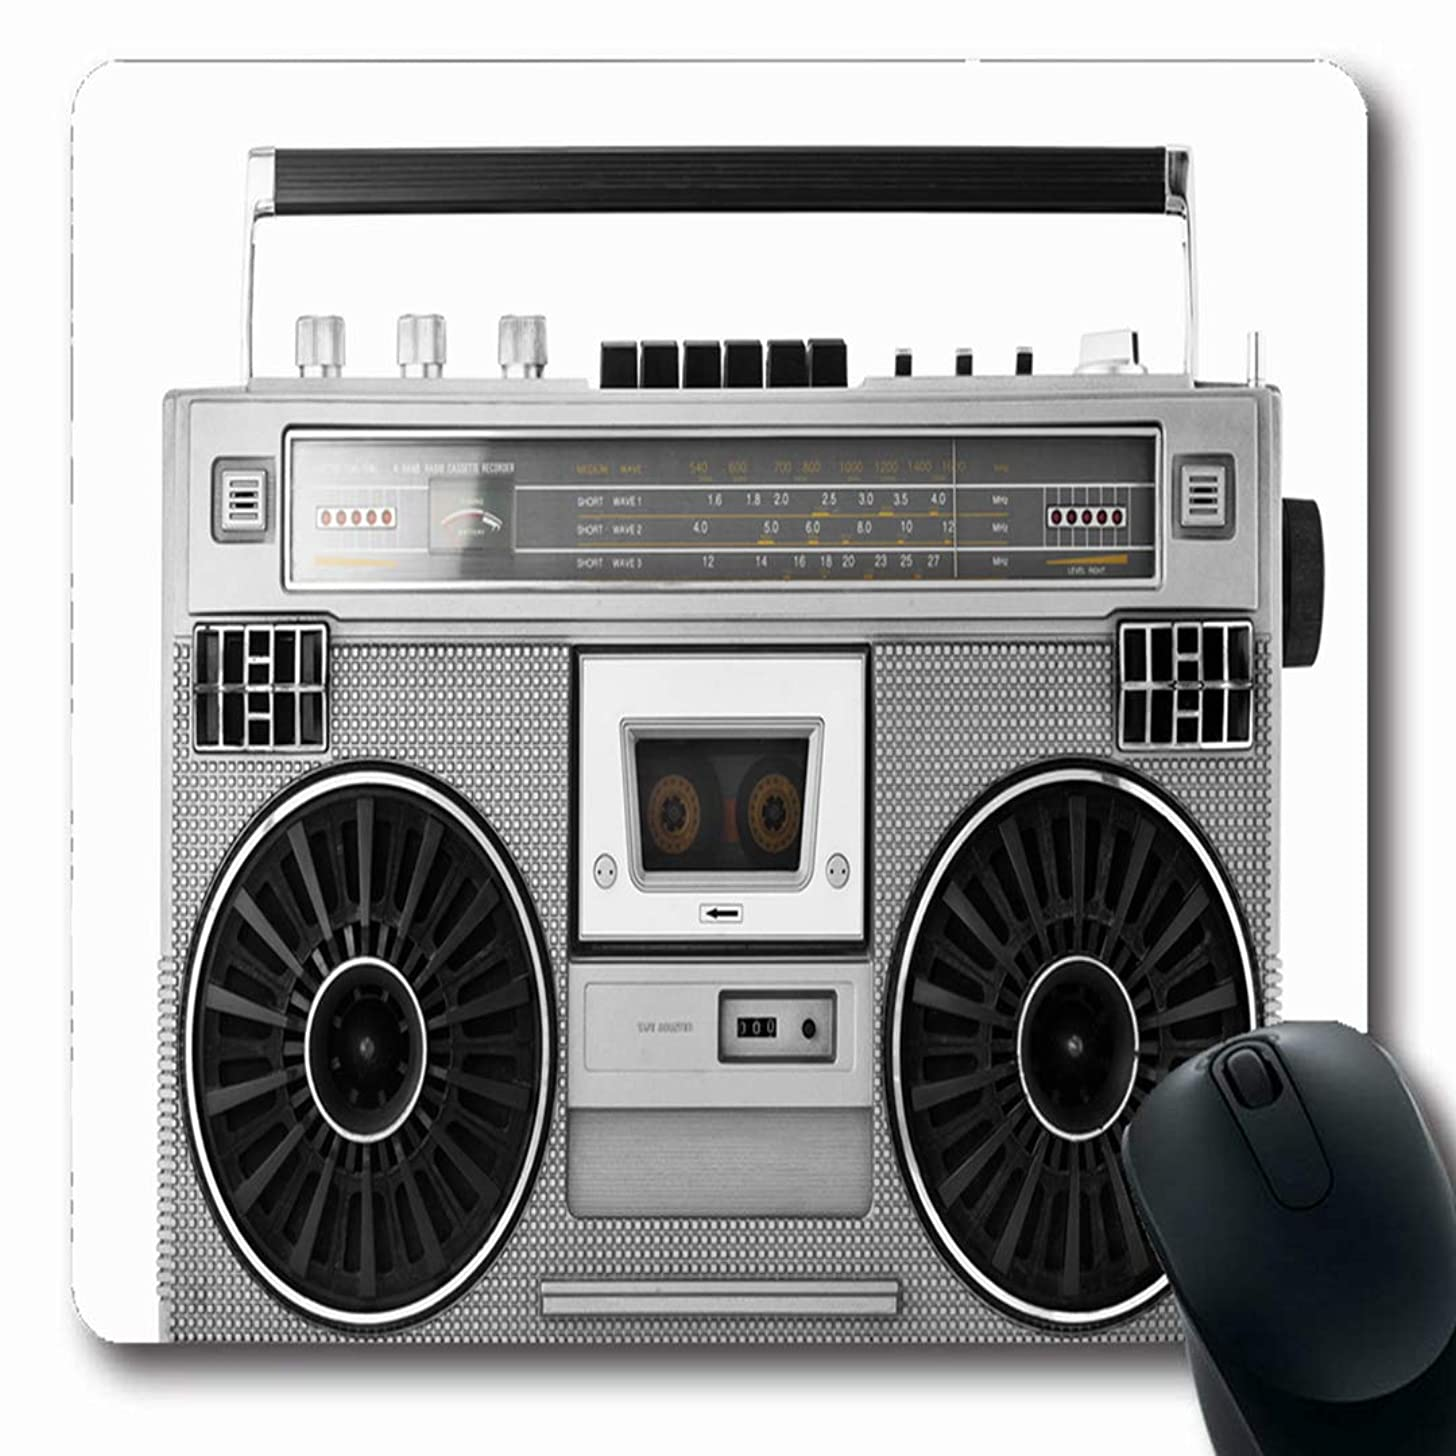 Ahawoso Mousepads Studio Stereo Silver Retro Ghetto Blaster Audio Boombox Hip Vintage Box Boom Radio Old 80S Design Oblong Shape 7.9 x 9.5 Inches Non-Slip Gaming Mouse Pad Rubber Oblong Mat